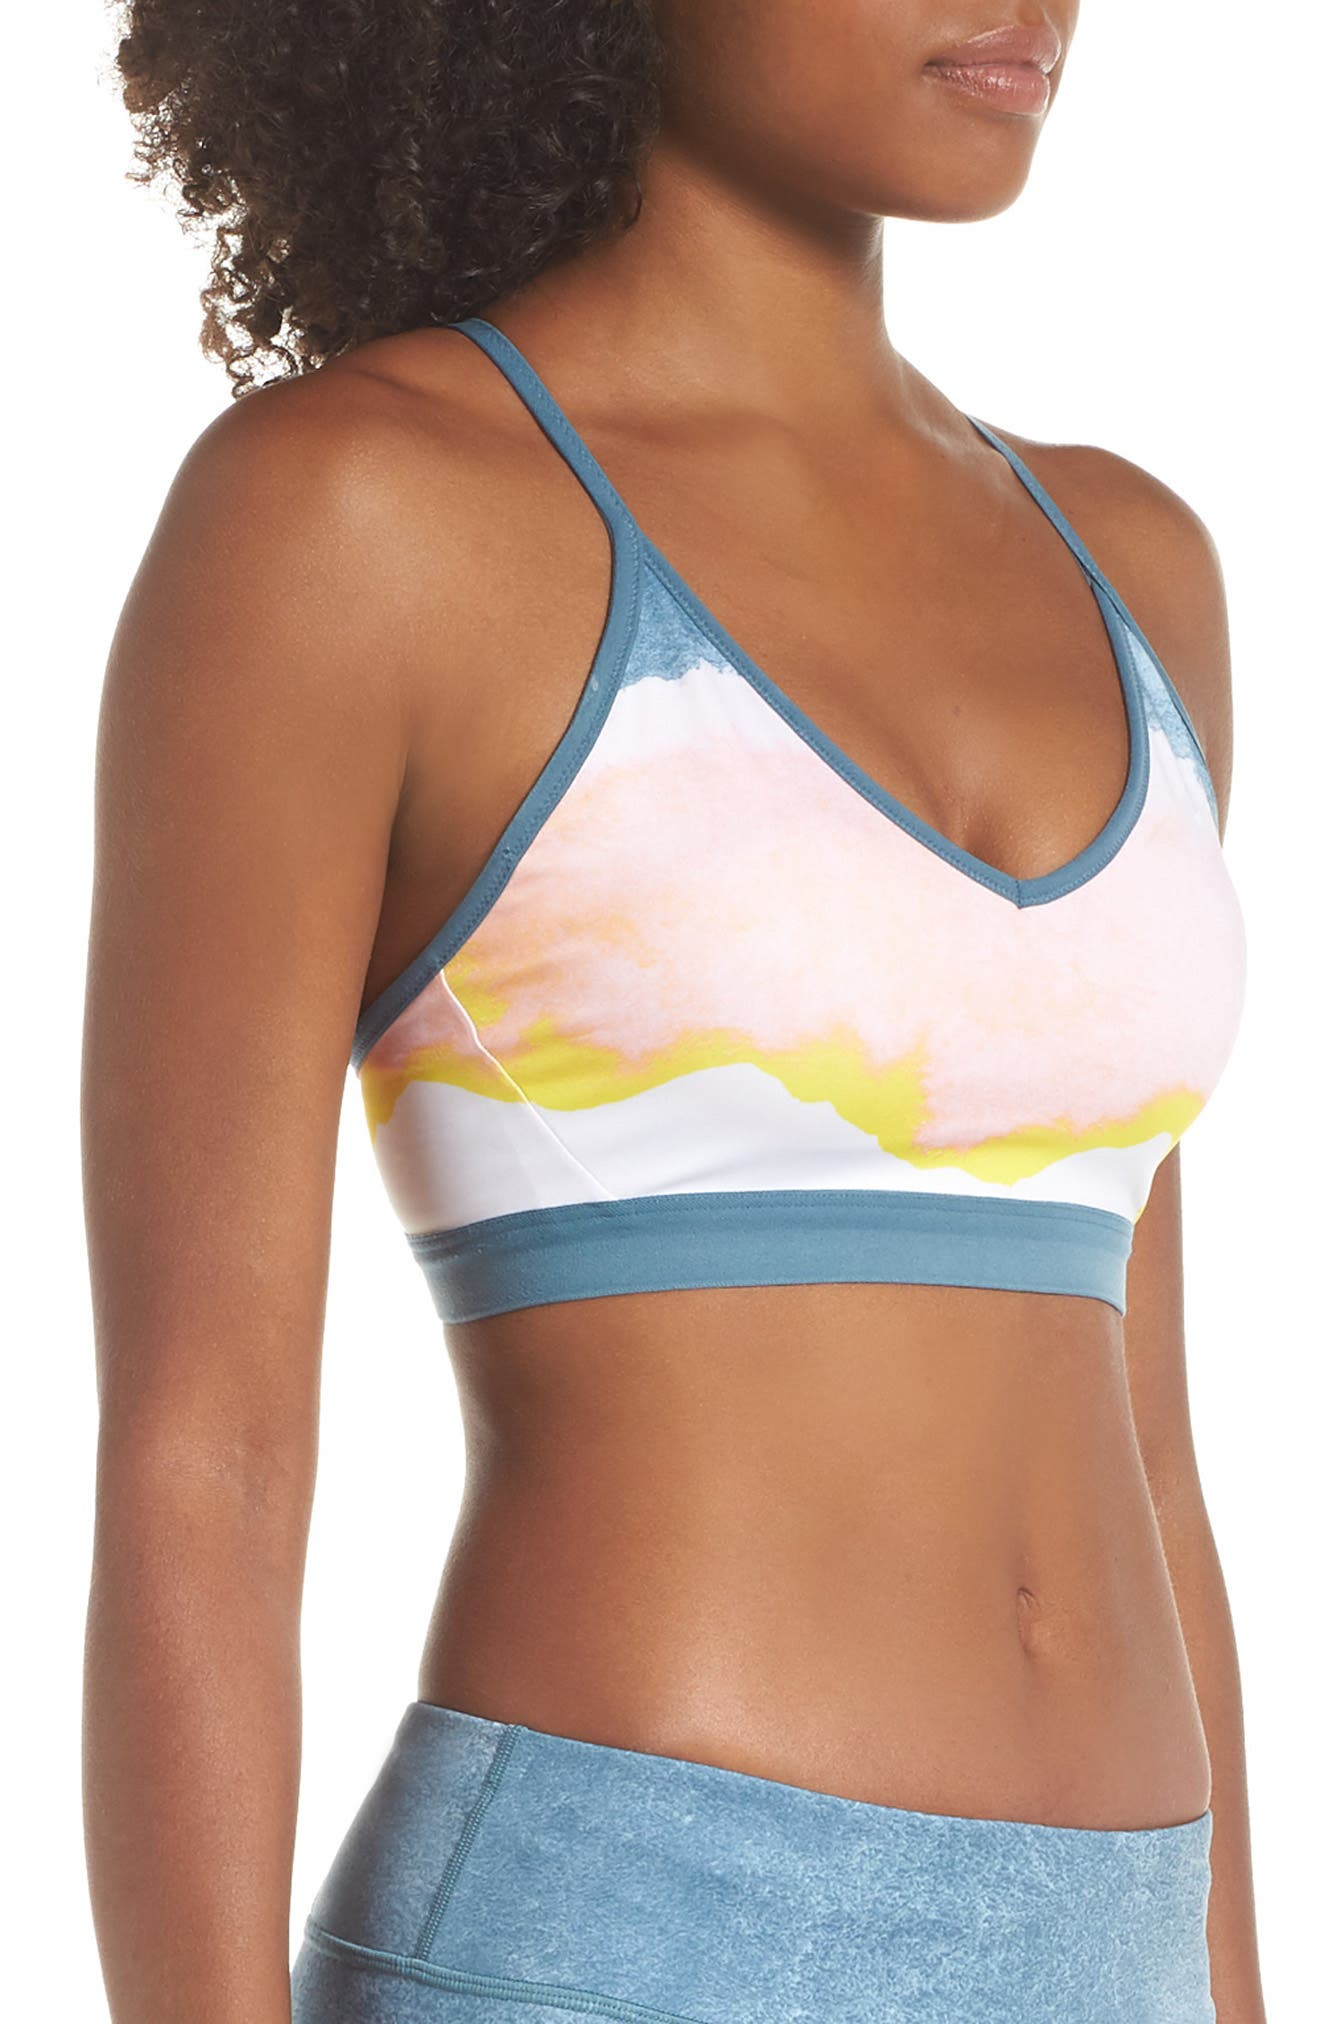 Indy Artist Sports Bra,                             Alternate thumbnail 3, color,                             WHITE/ CELESTIAL TEAL/ WHITE